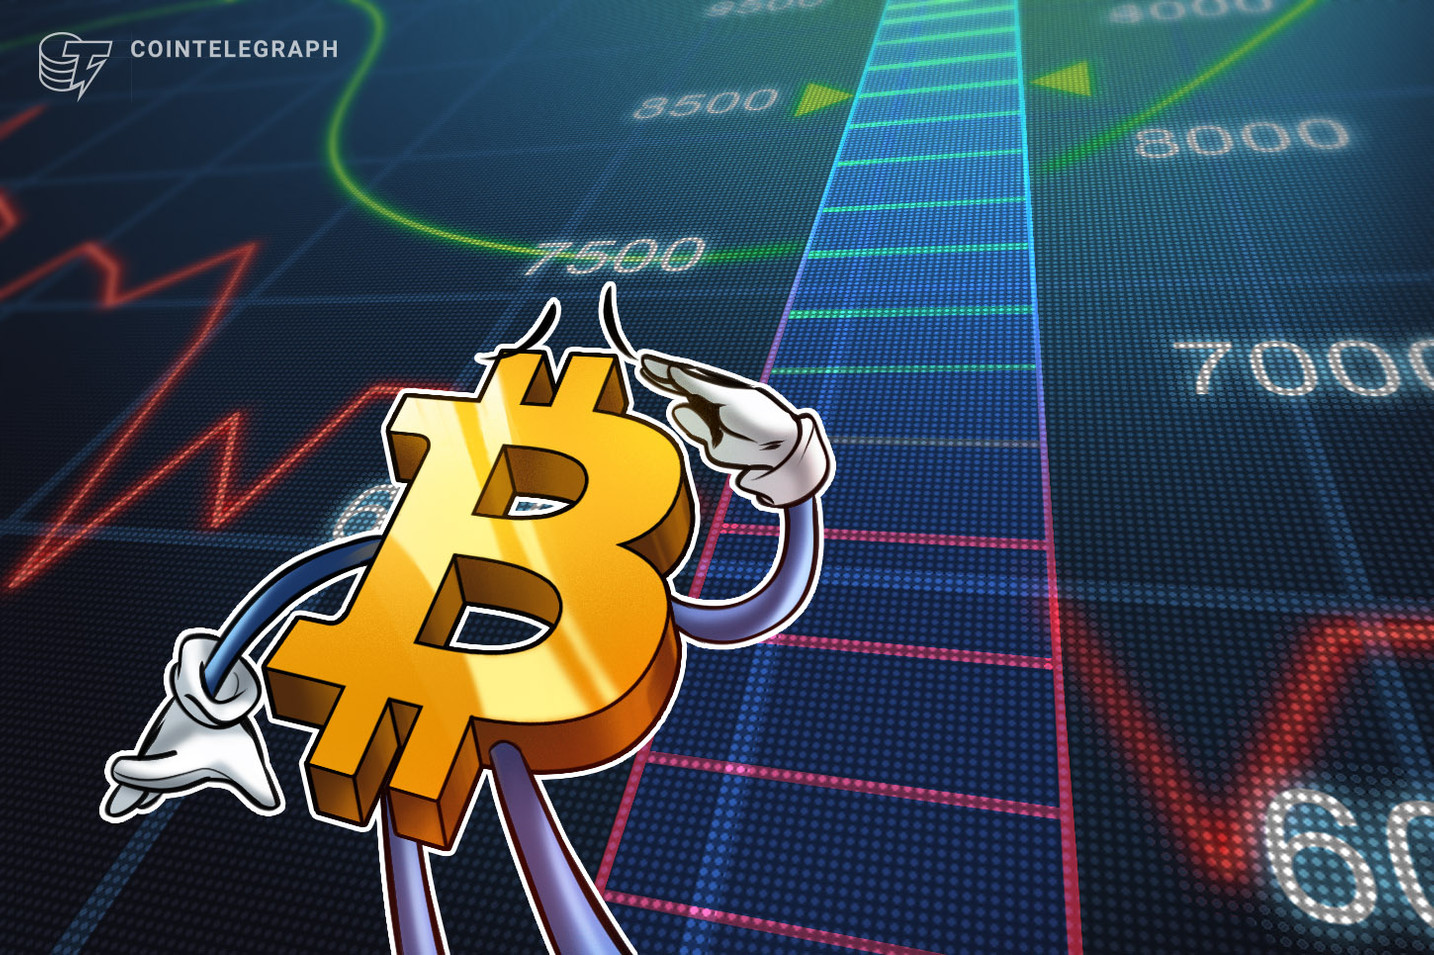 Bitcoin Price Rejects $7K but Tone Vays Says 75% Chance BTC Bottomed